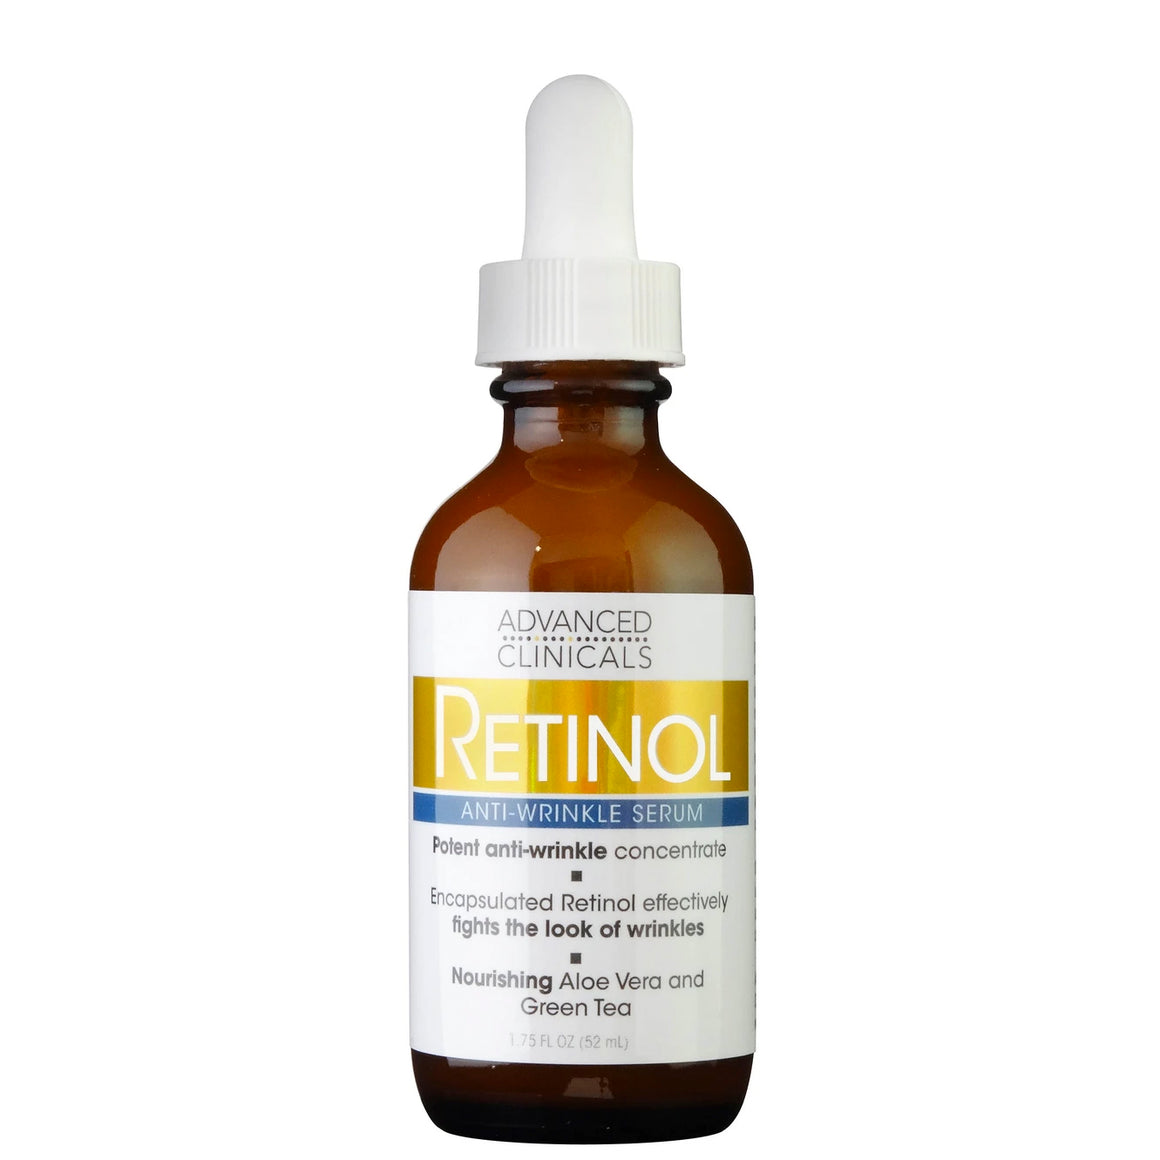 1.75oz retinol serum is an encapsulated retiol with nourishing aloe vera and green tea.